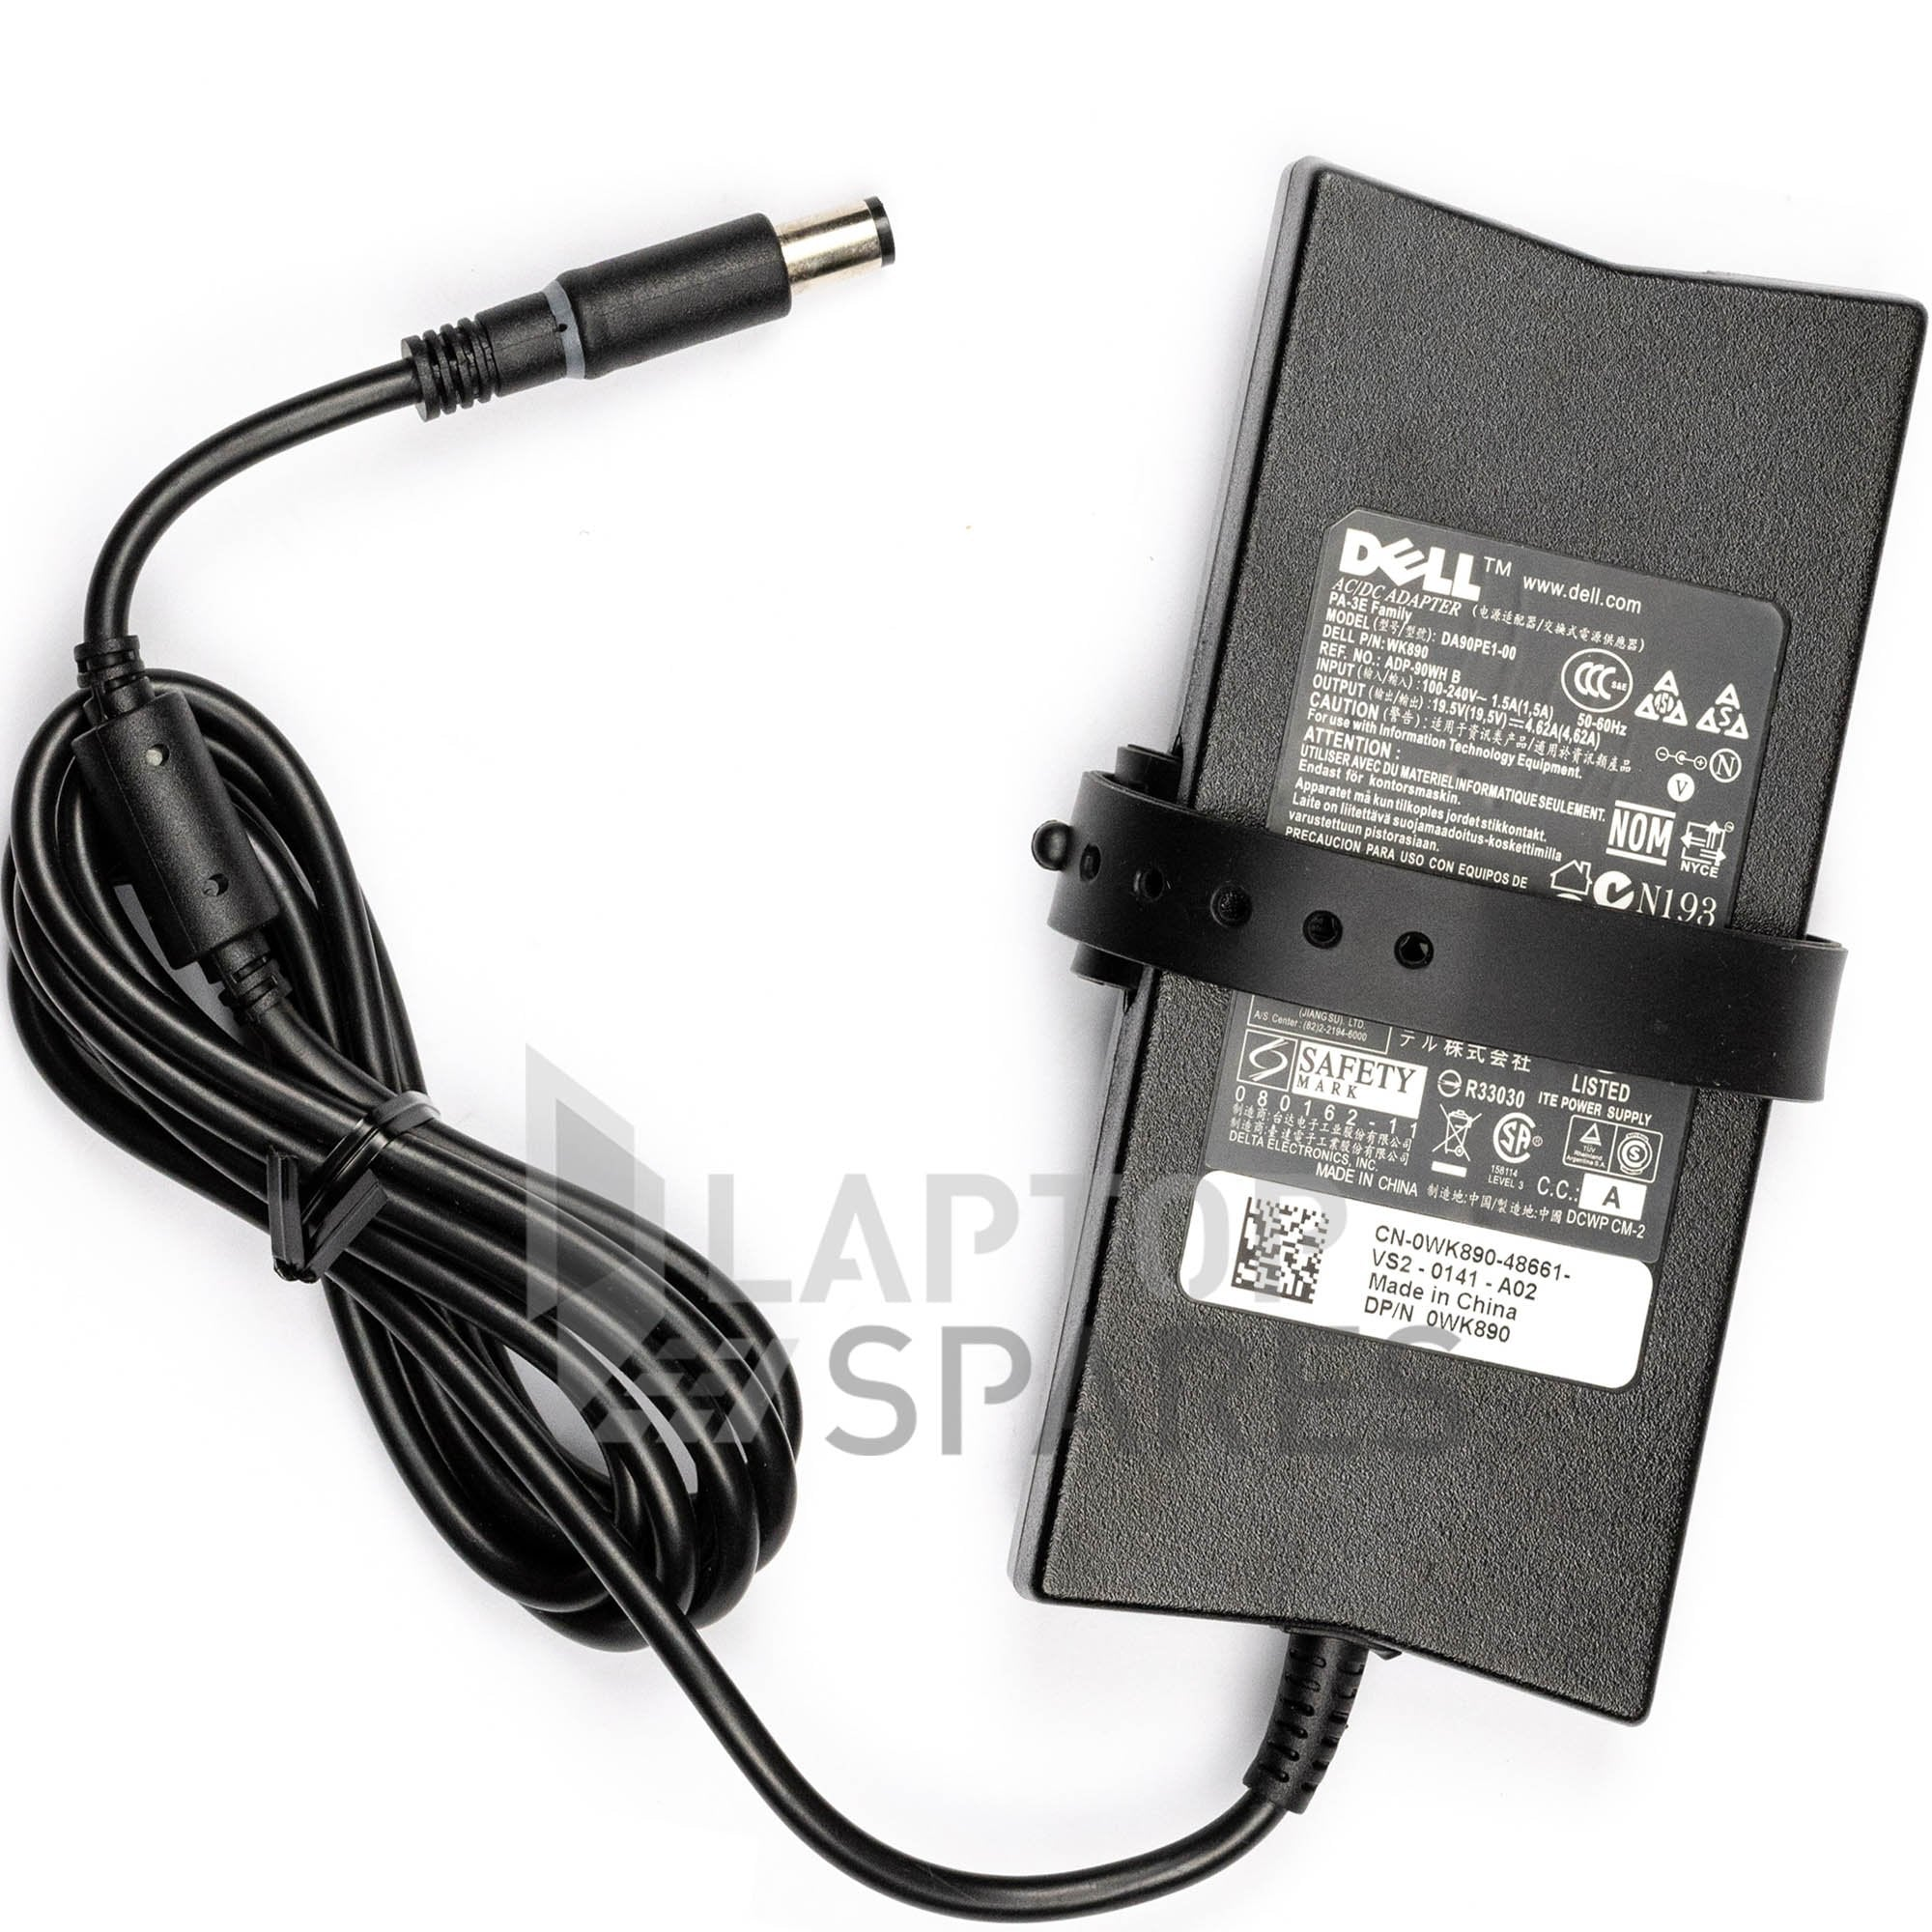 Dell 450-11850 450-11859 450-16681 Laptop Slim AC Adapter Charger